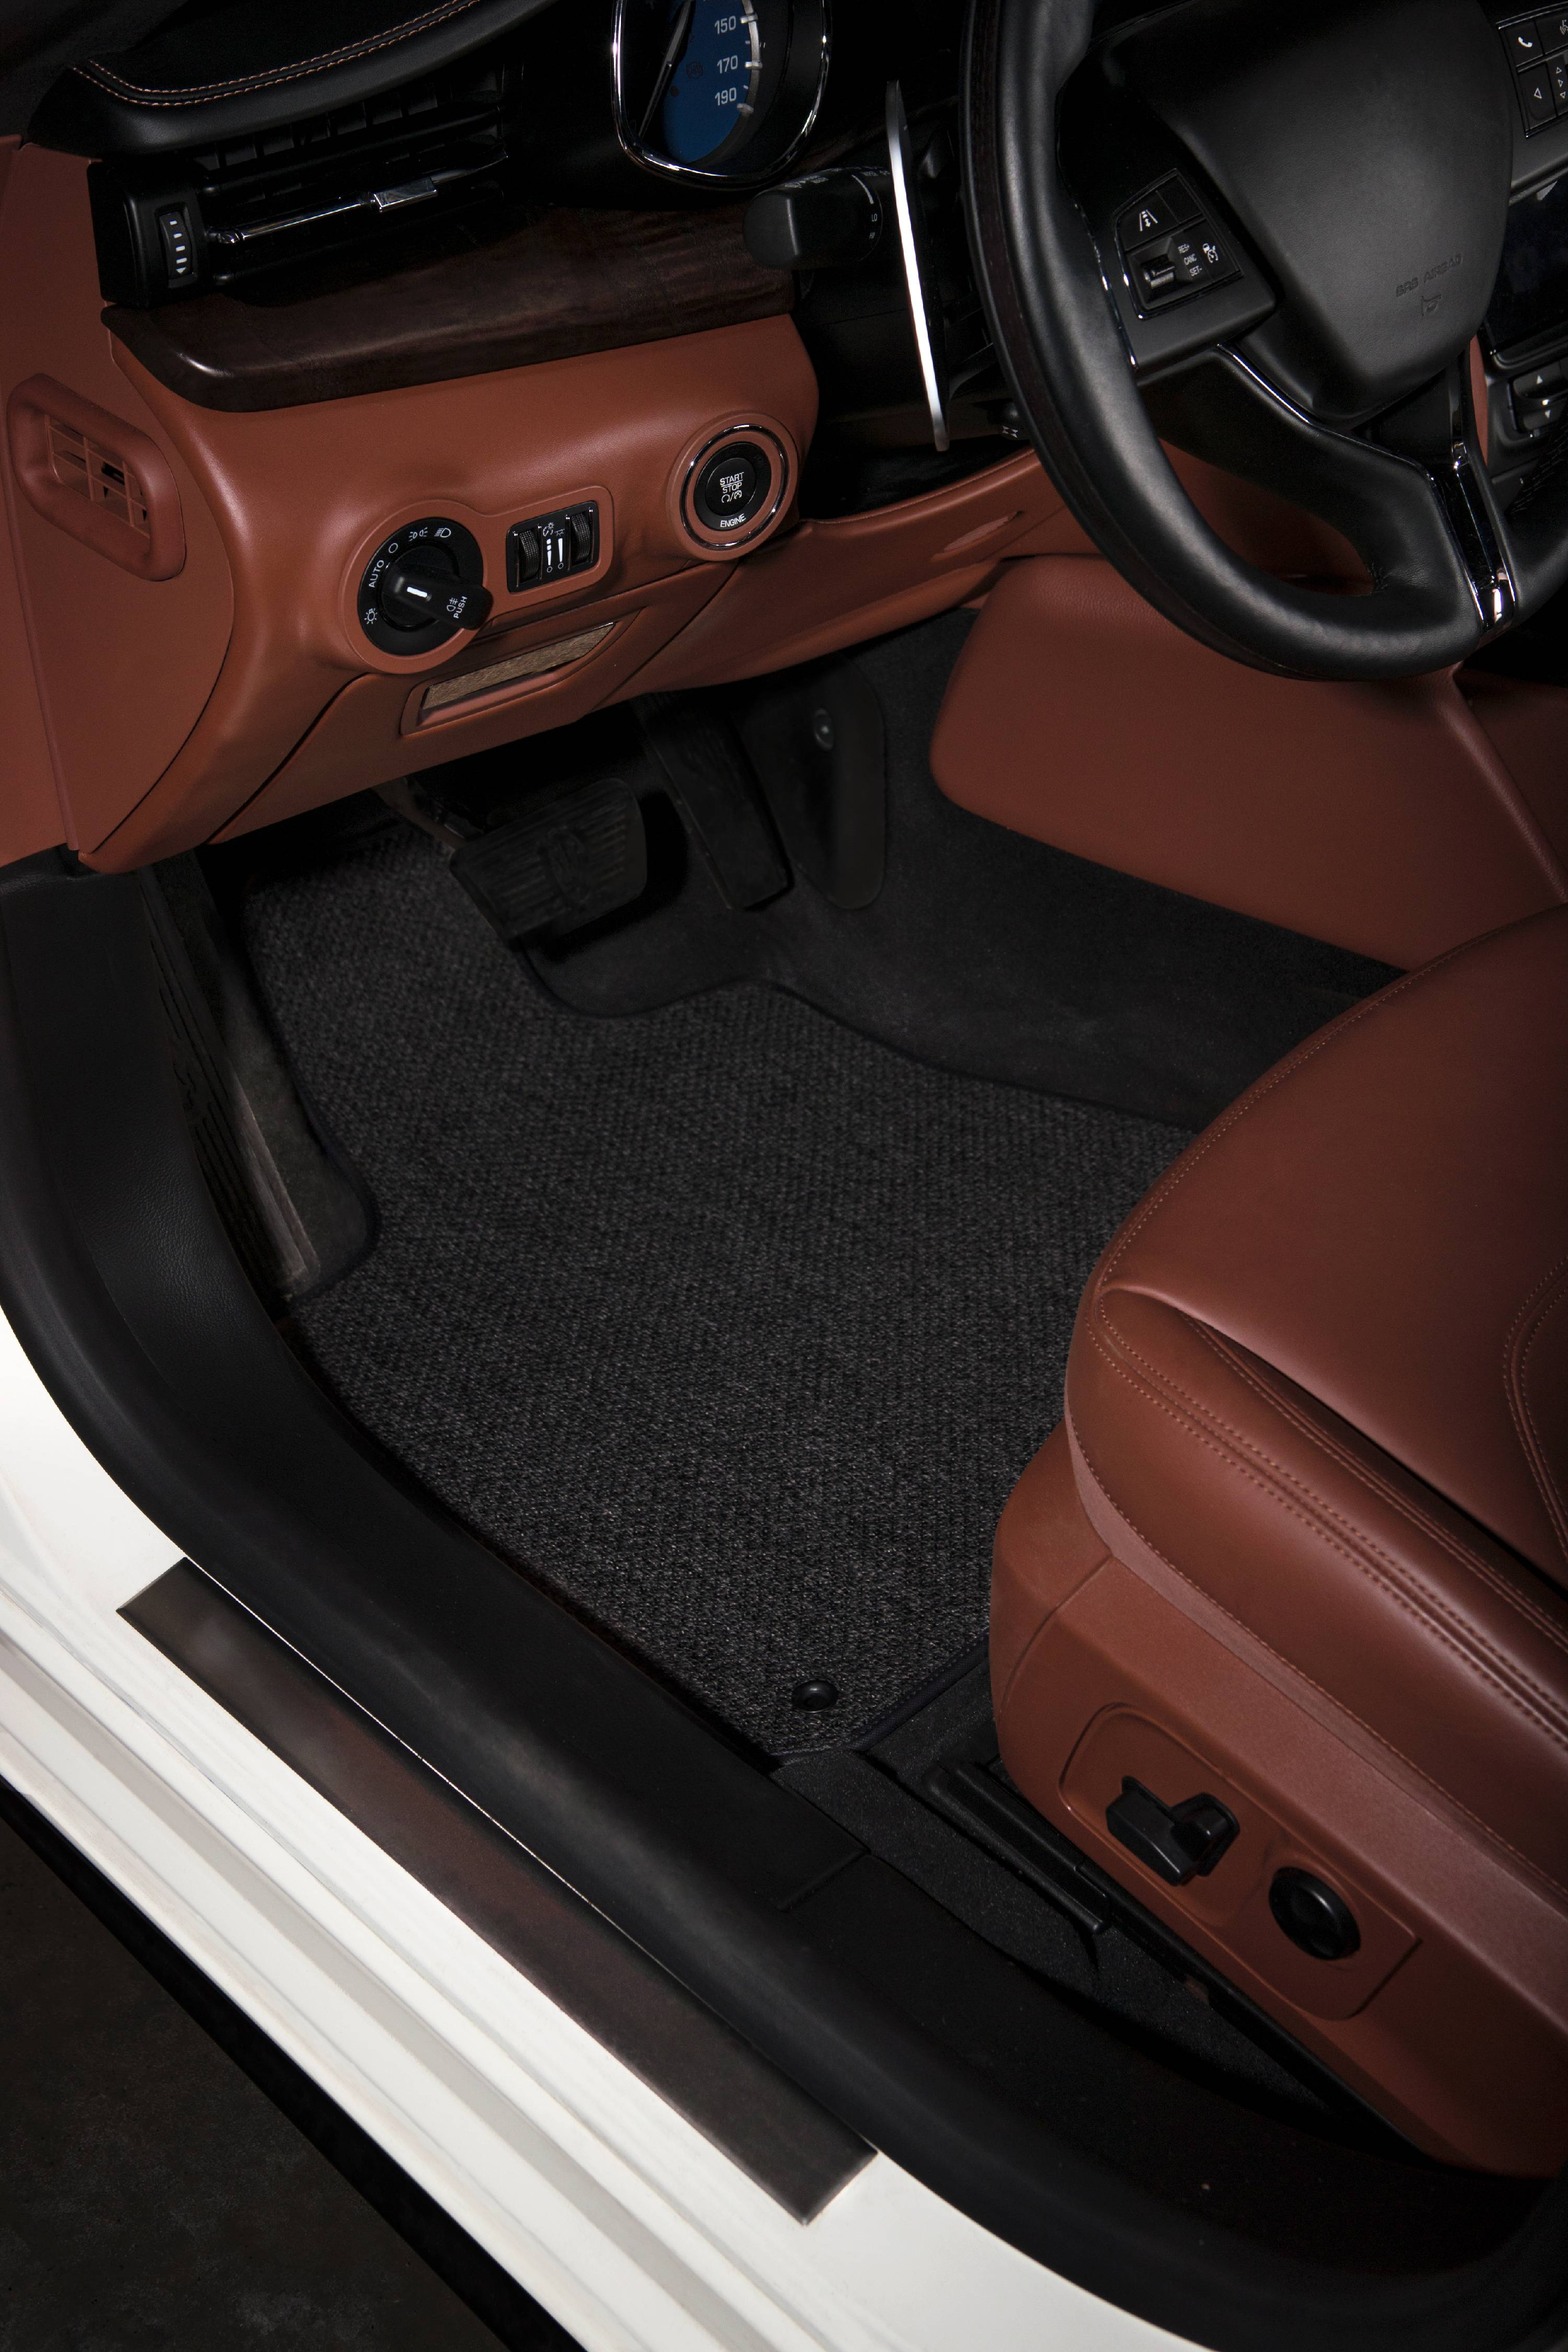 GGBAILEY Black Oriental Driver Passenger /& Rear Floor Mats Custom-Fit for Ford F-250 Super Duty Crew Cab 2017-2019